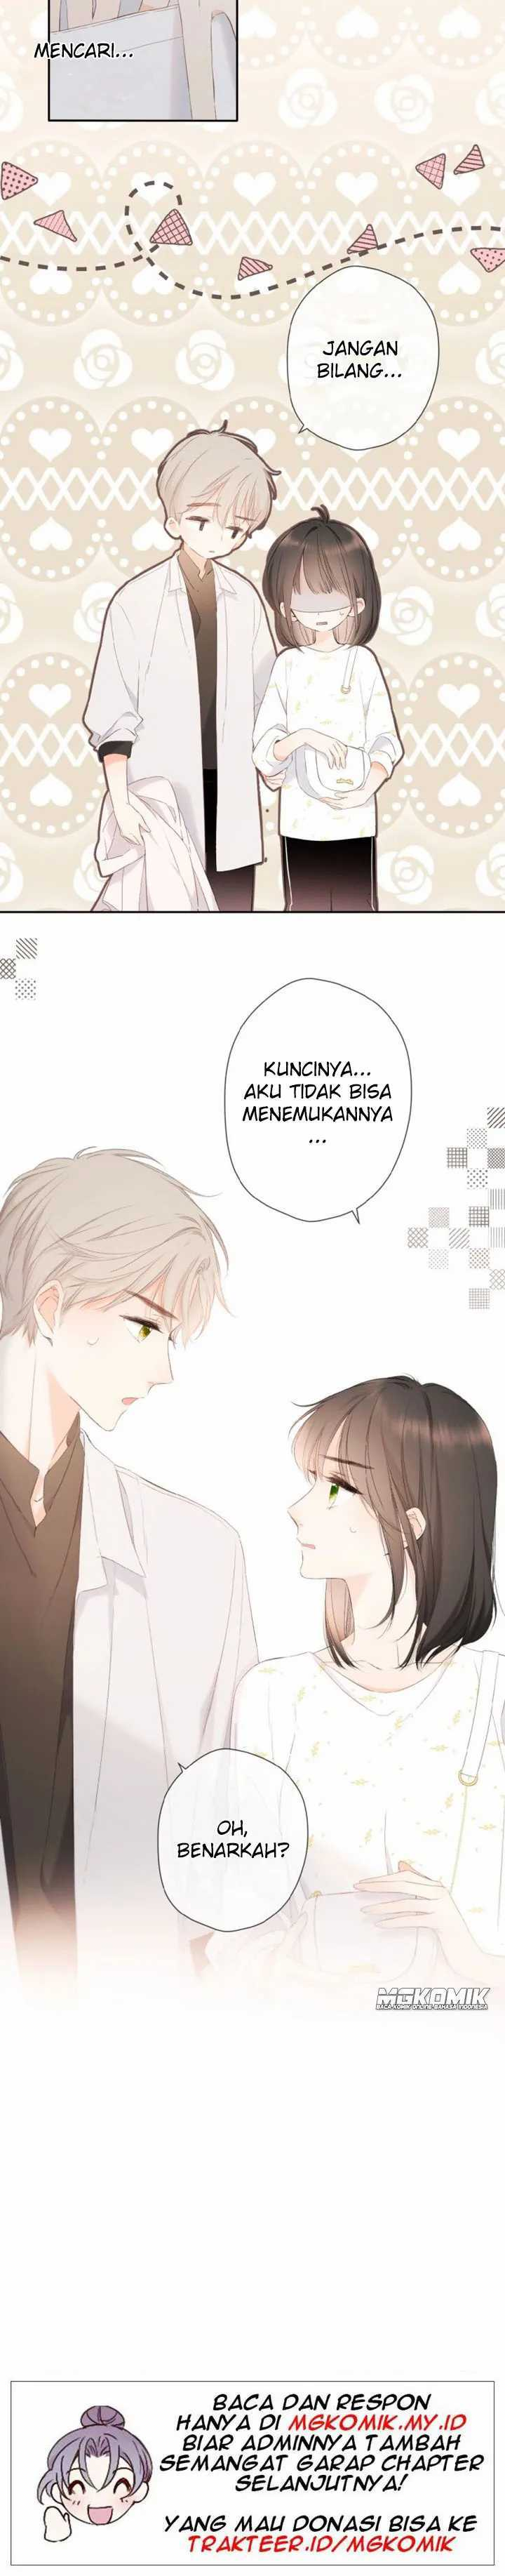 Once More Chapter 13